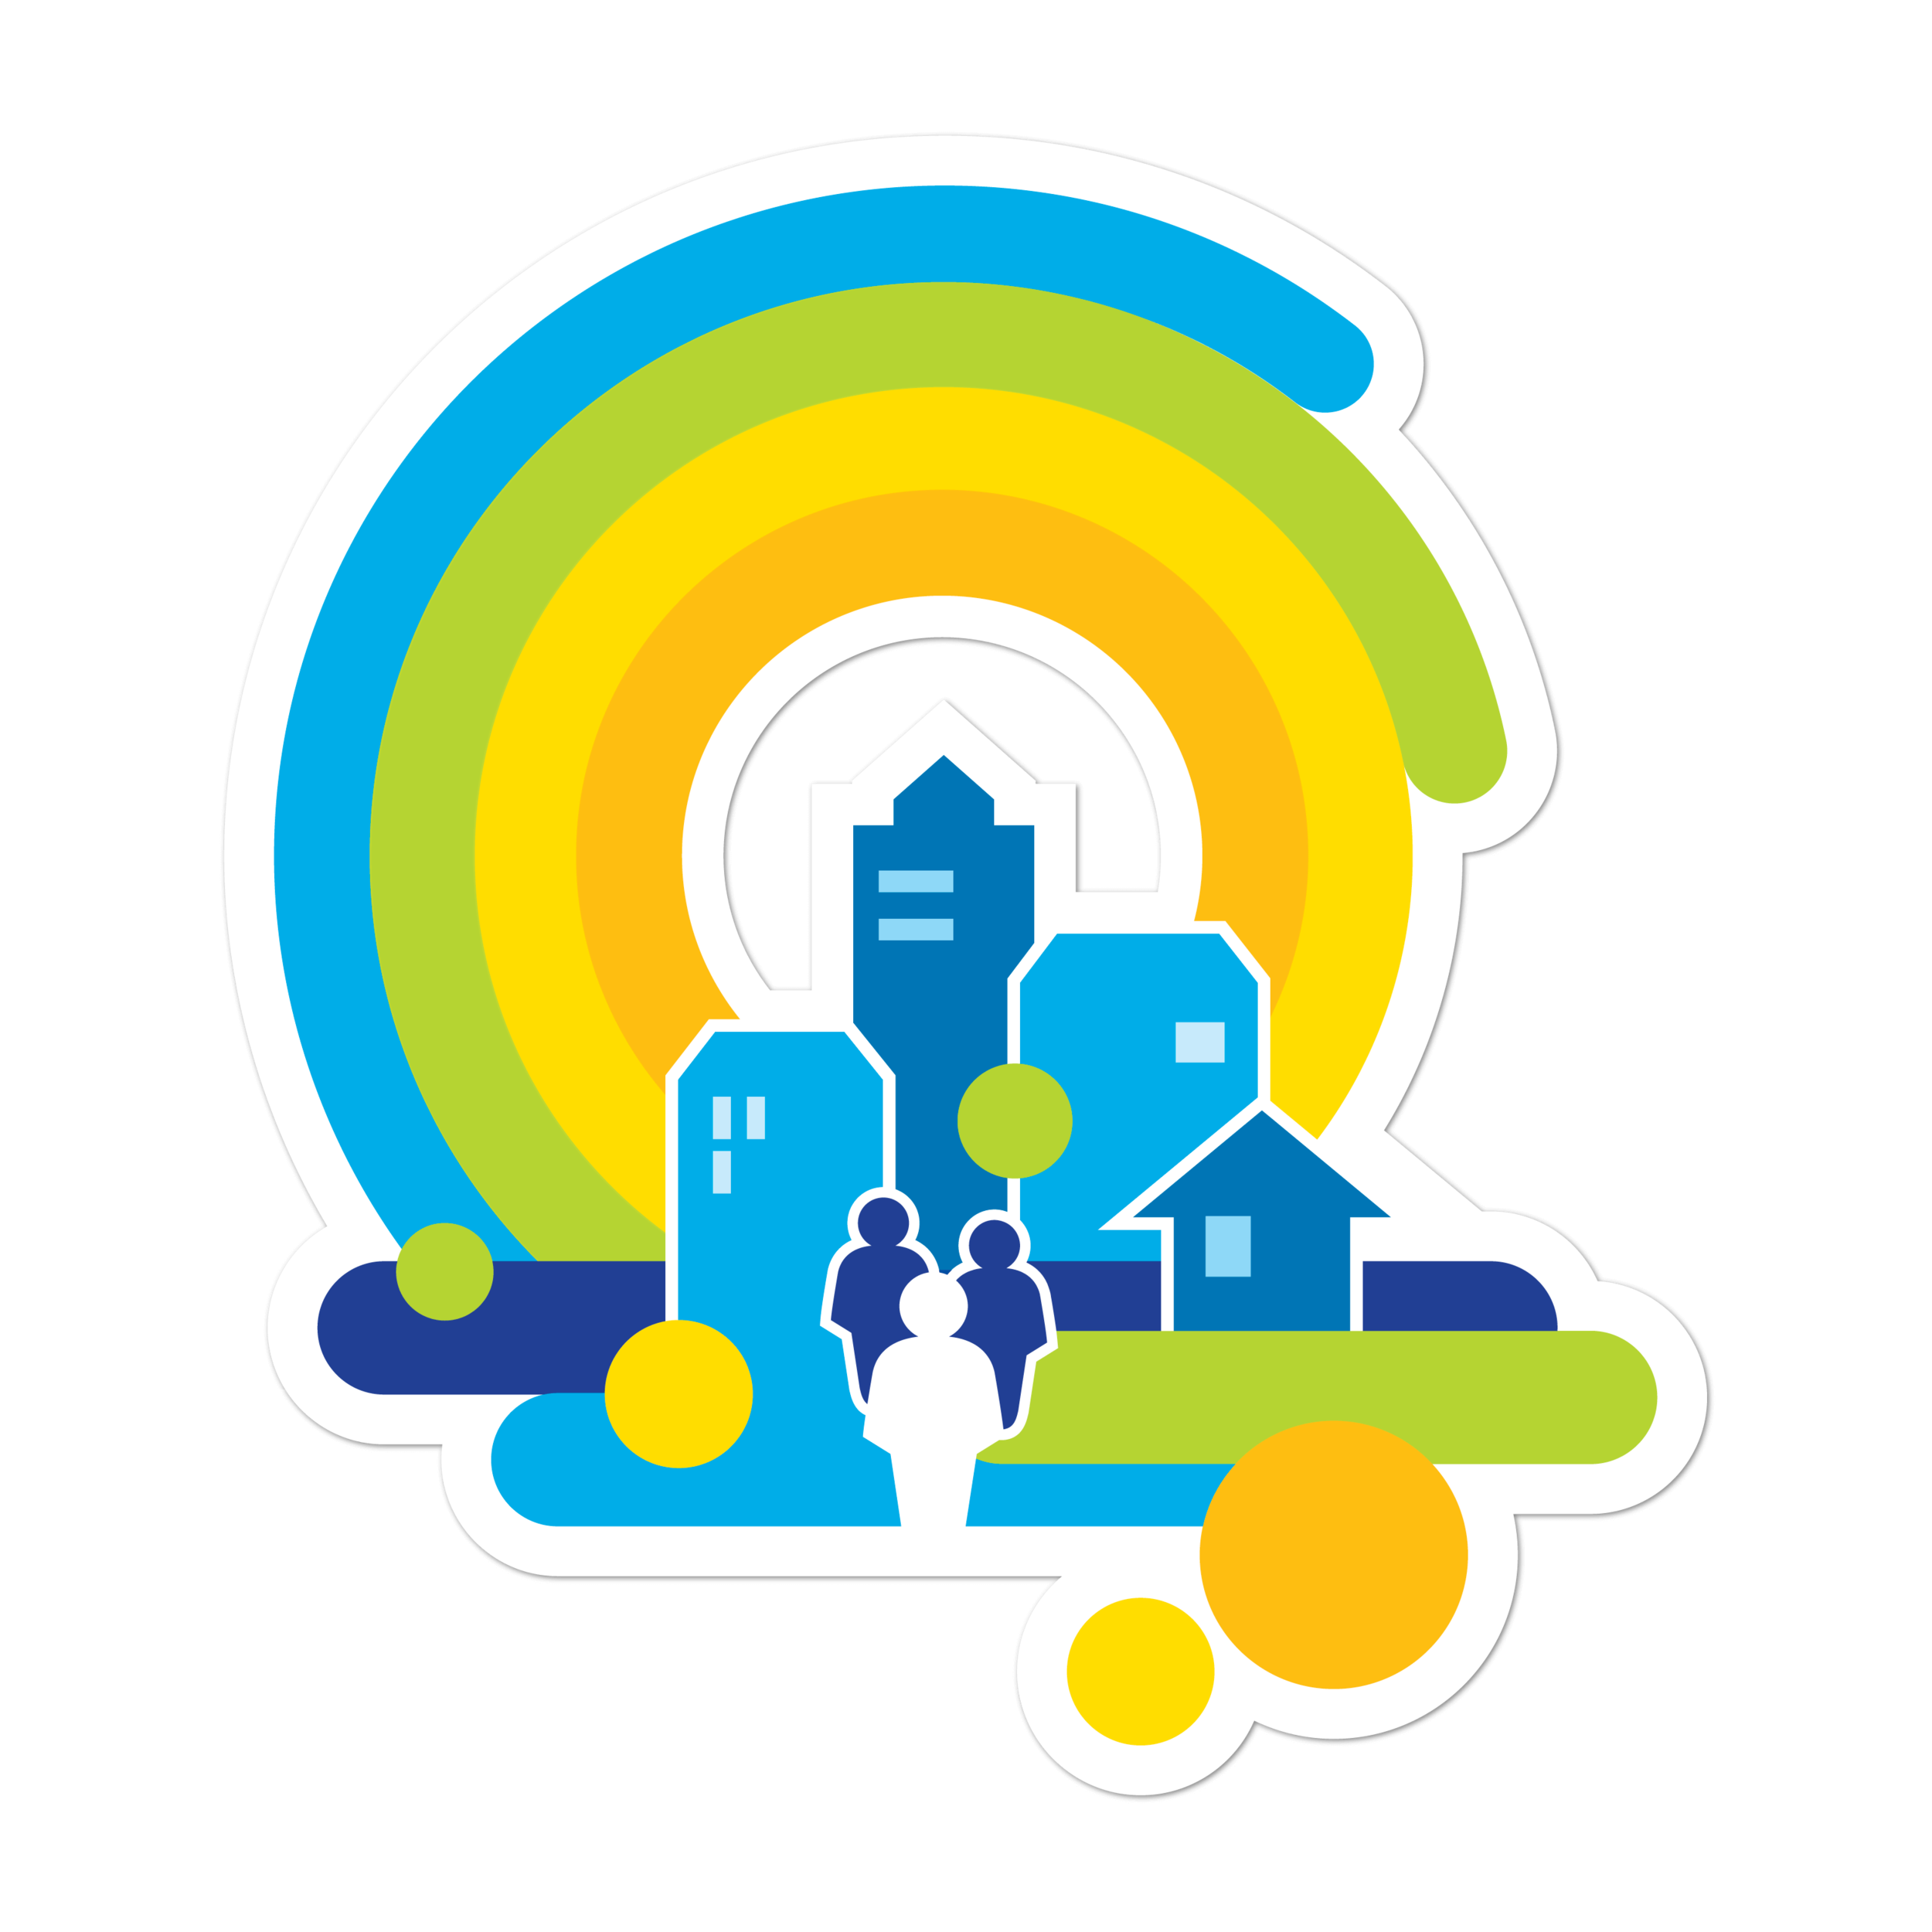 2017-11-01  EU Smart Cities   As of today PACE will be contributing to the Market Place of the European Innovation Partnership on Smart Cities and Communities.  Find us on  eu-smartcities.eu